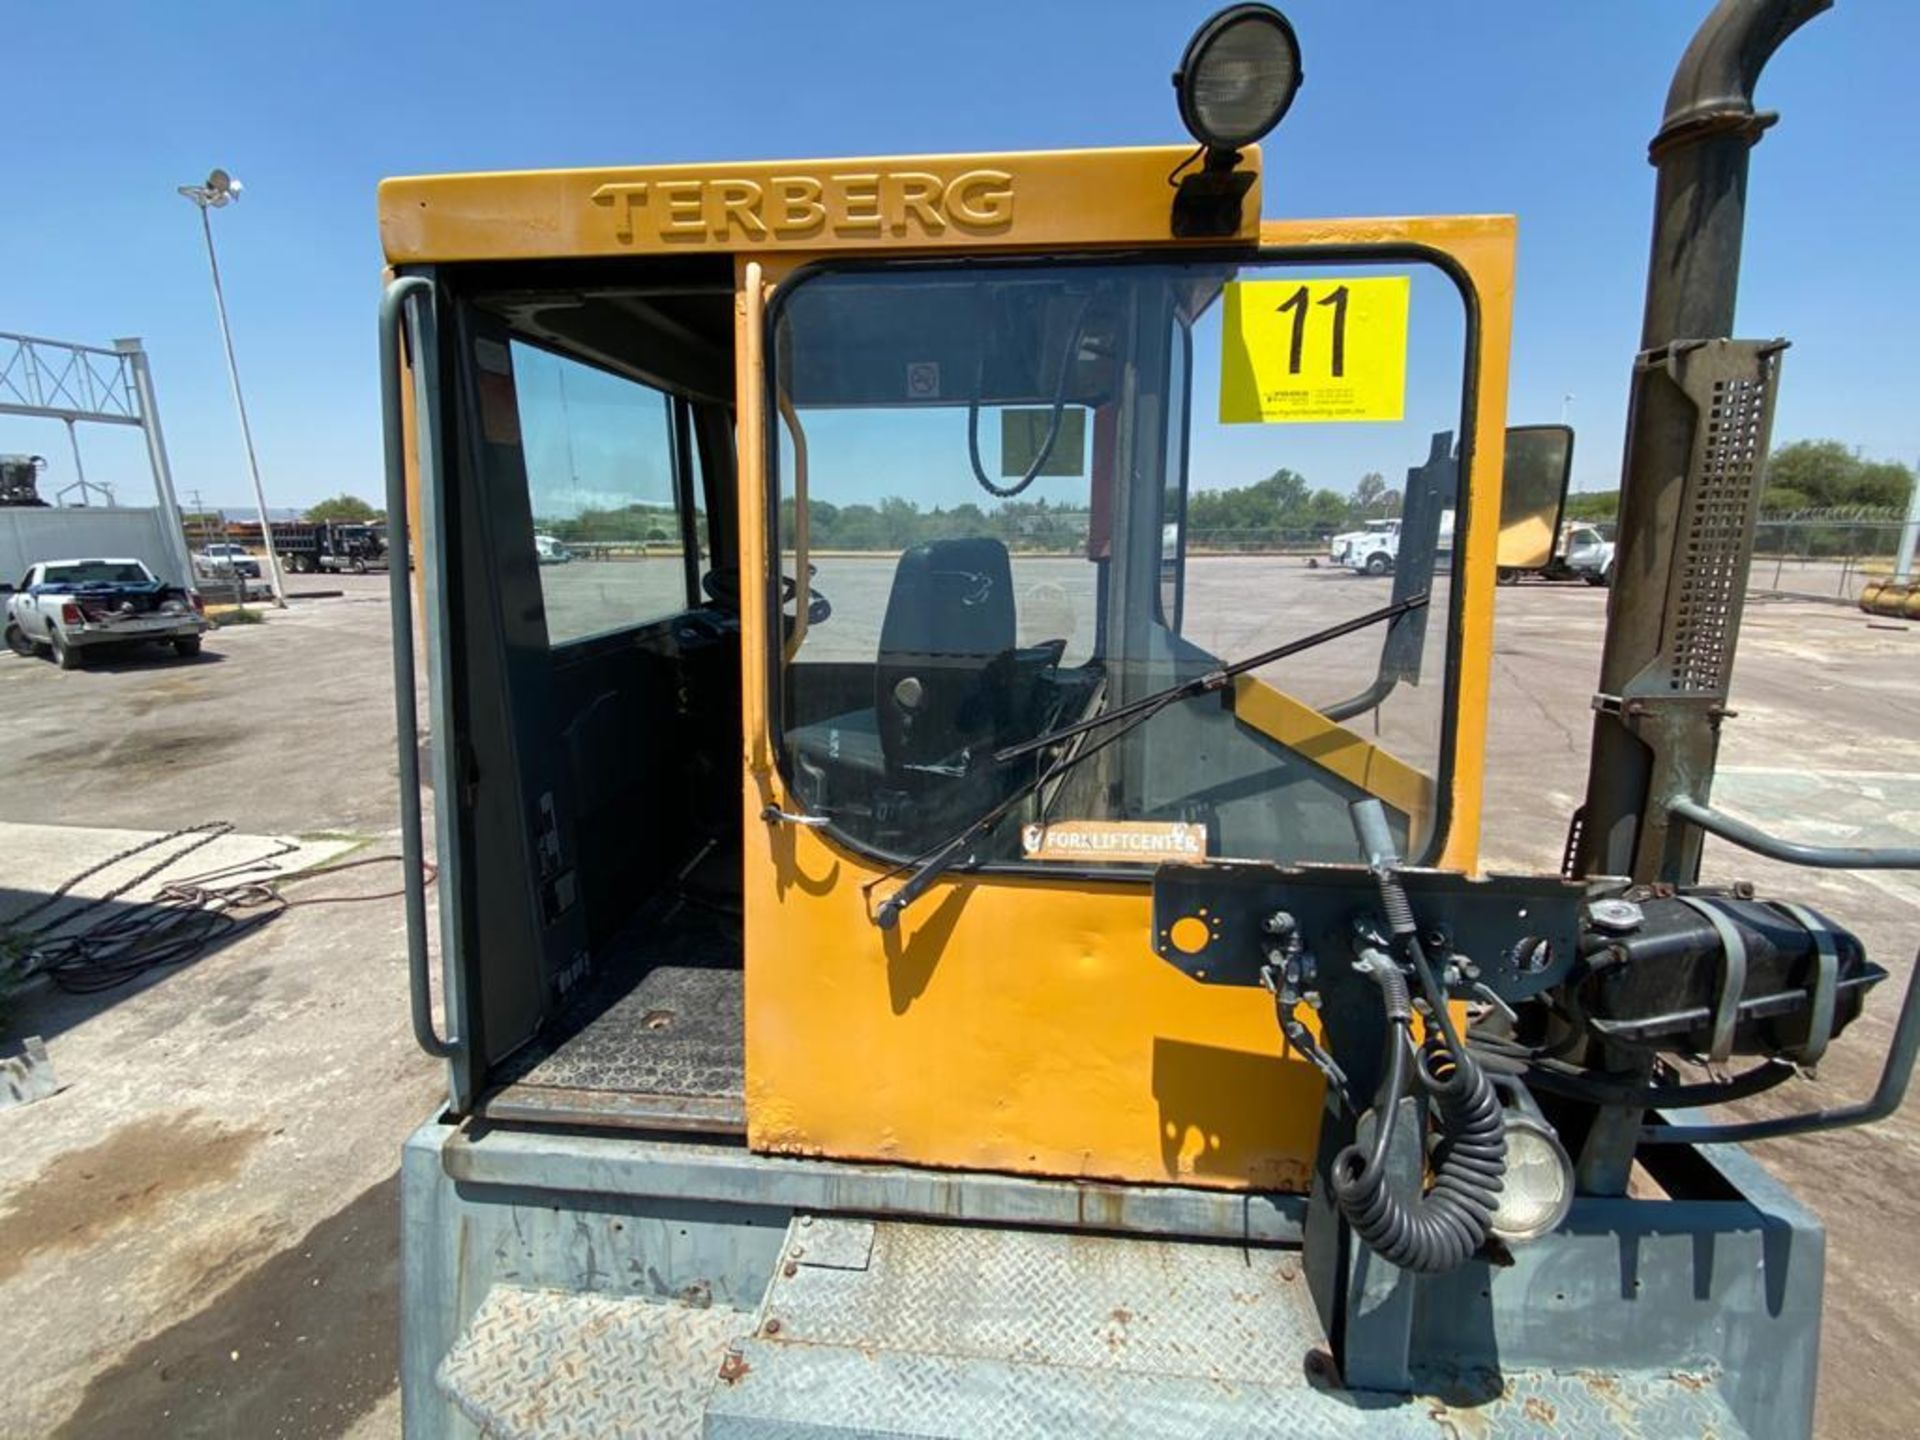 Terberg Capacity 2002 Terminal Tractor, automatic transmission, with Volvo motor - Image 19 of 57